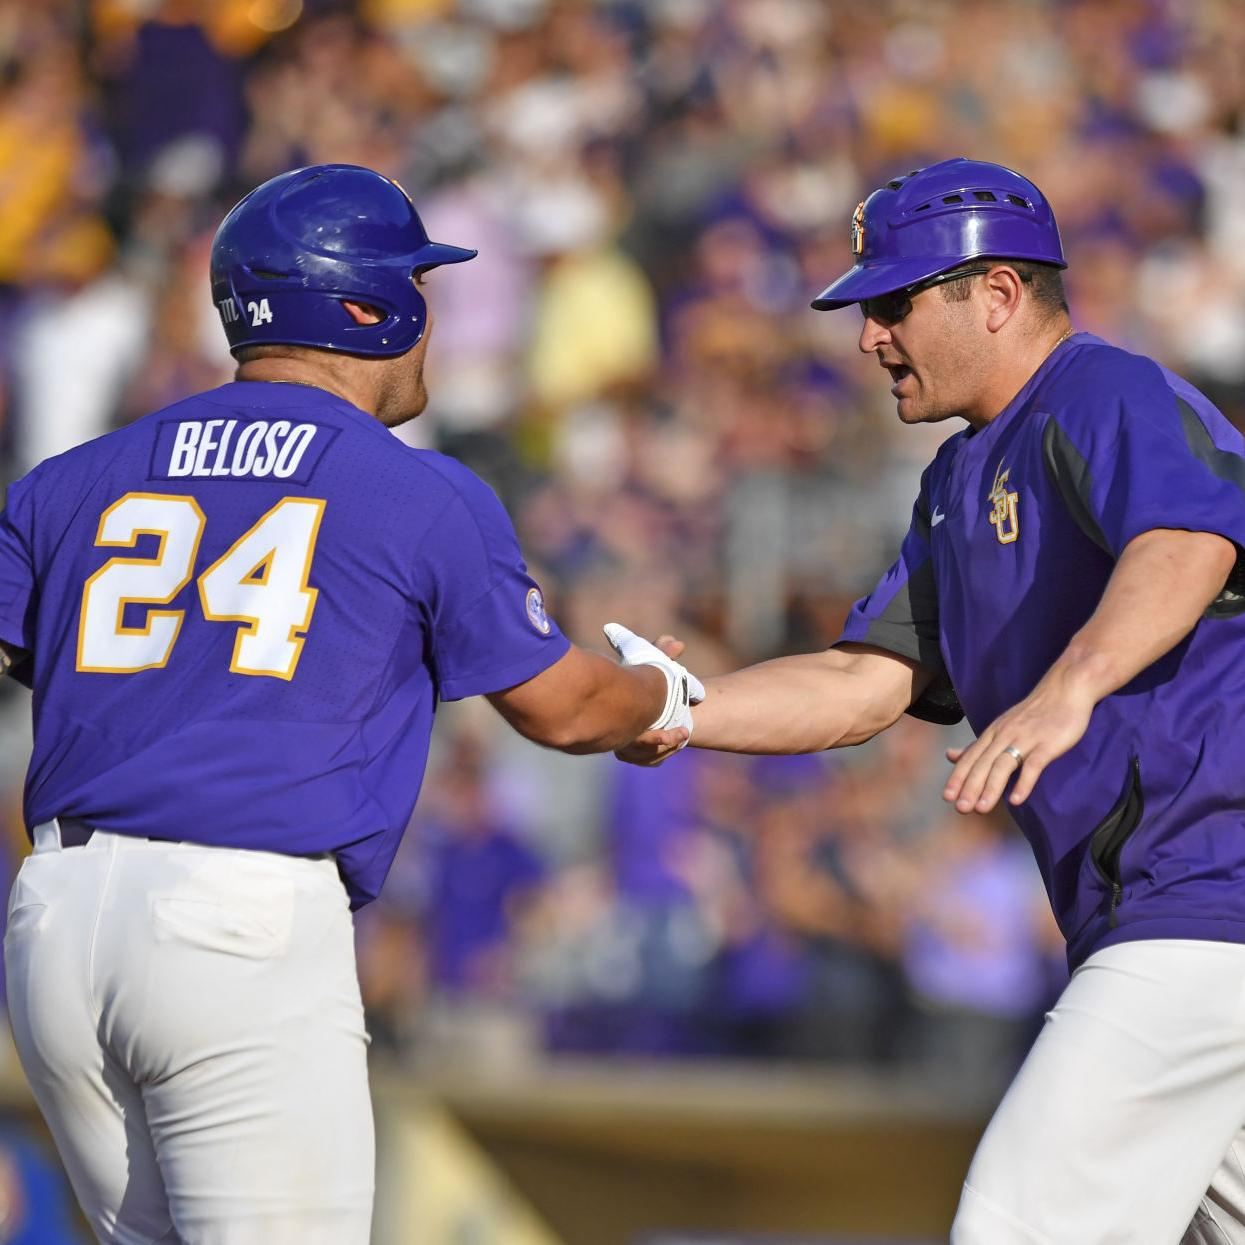 LSU baseball's 2019 recruiting class ranked No  7 by